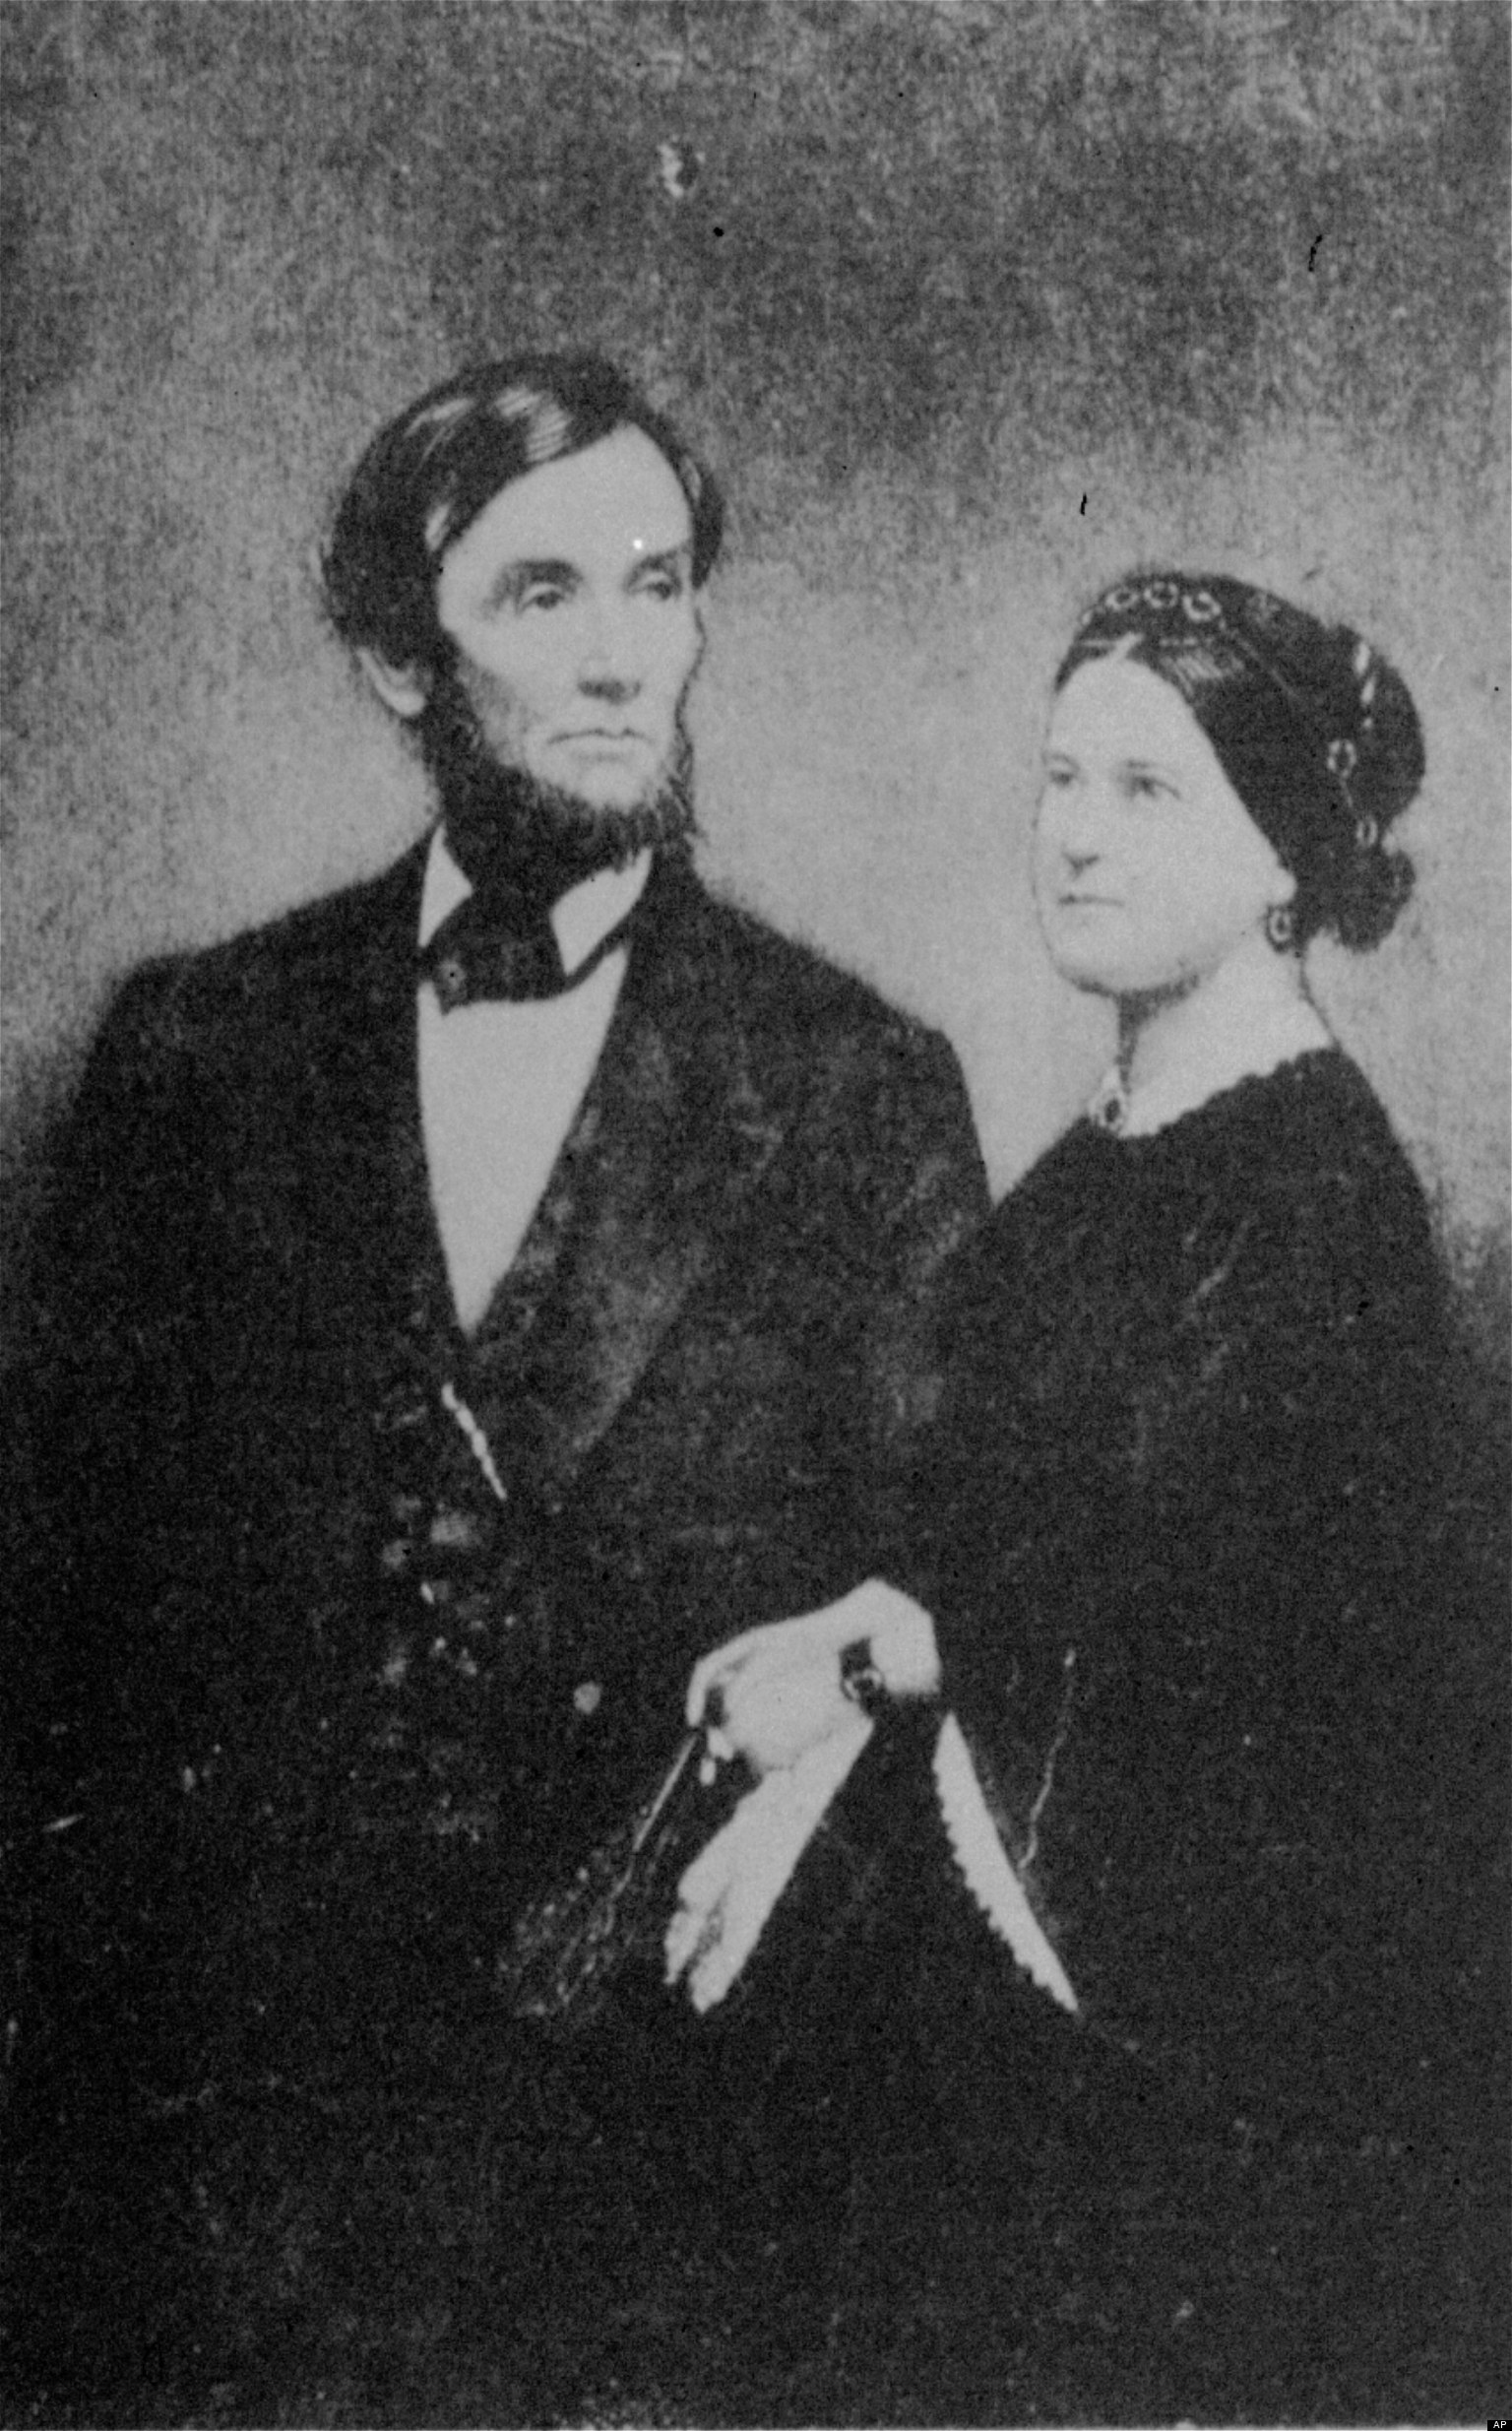 Mary Todd Lincoln Insanity Trial Restaged Before Local